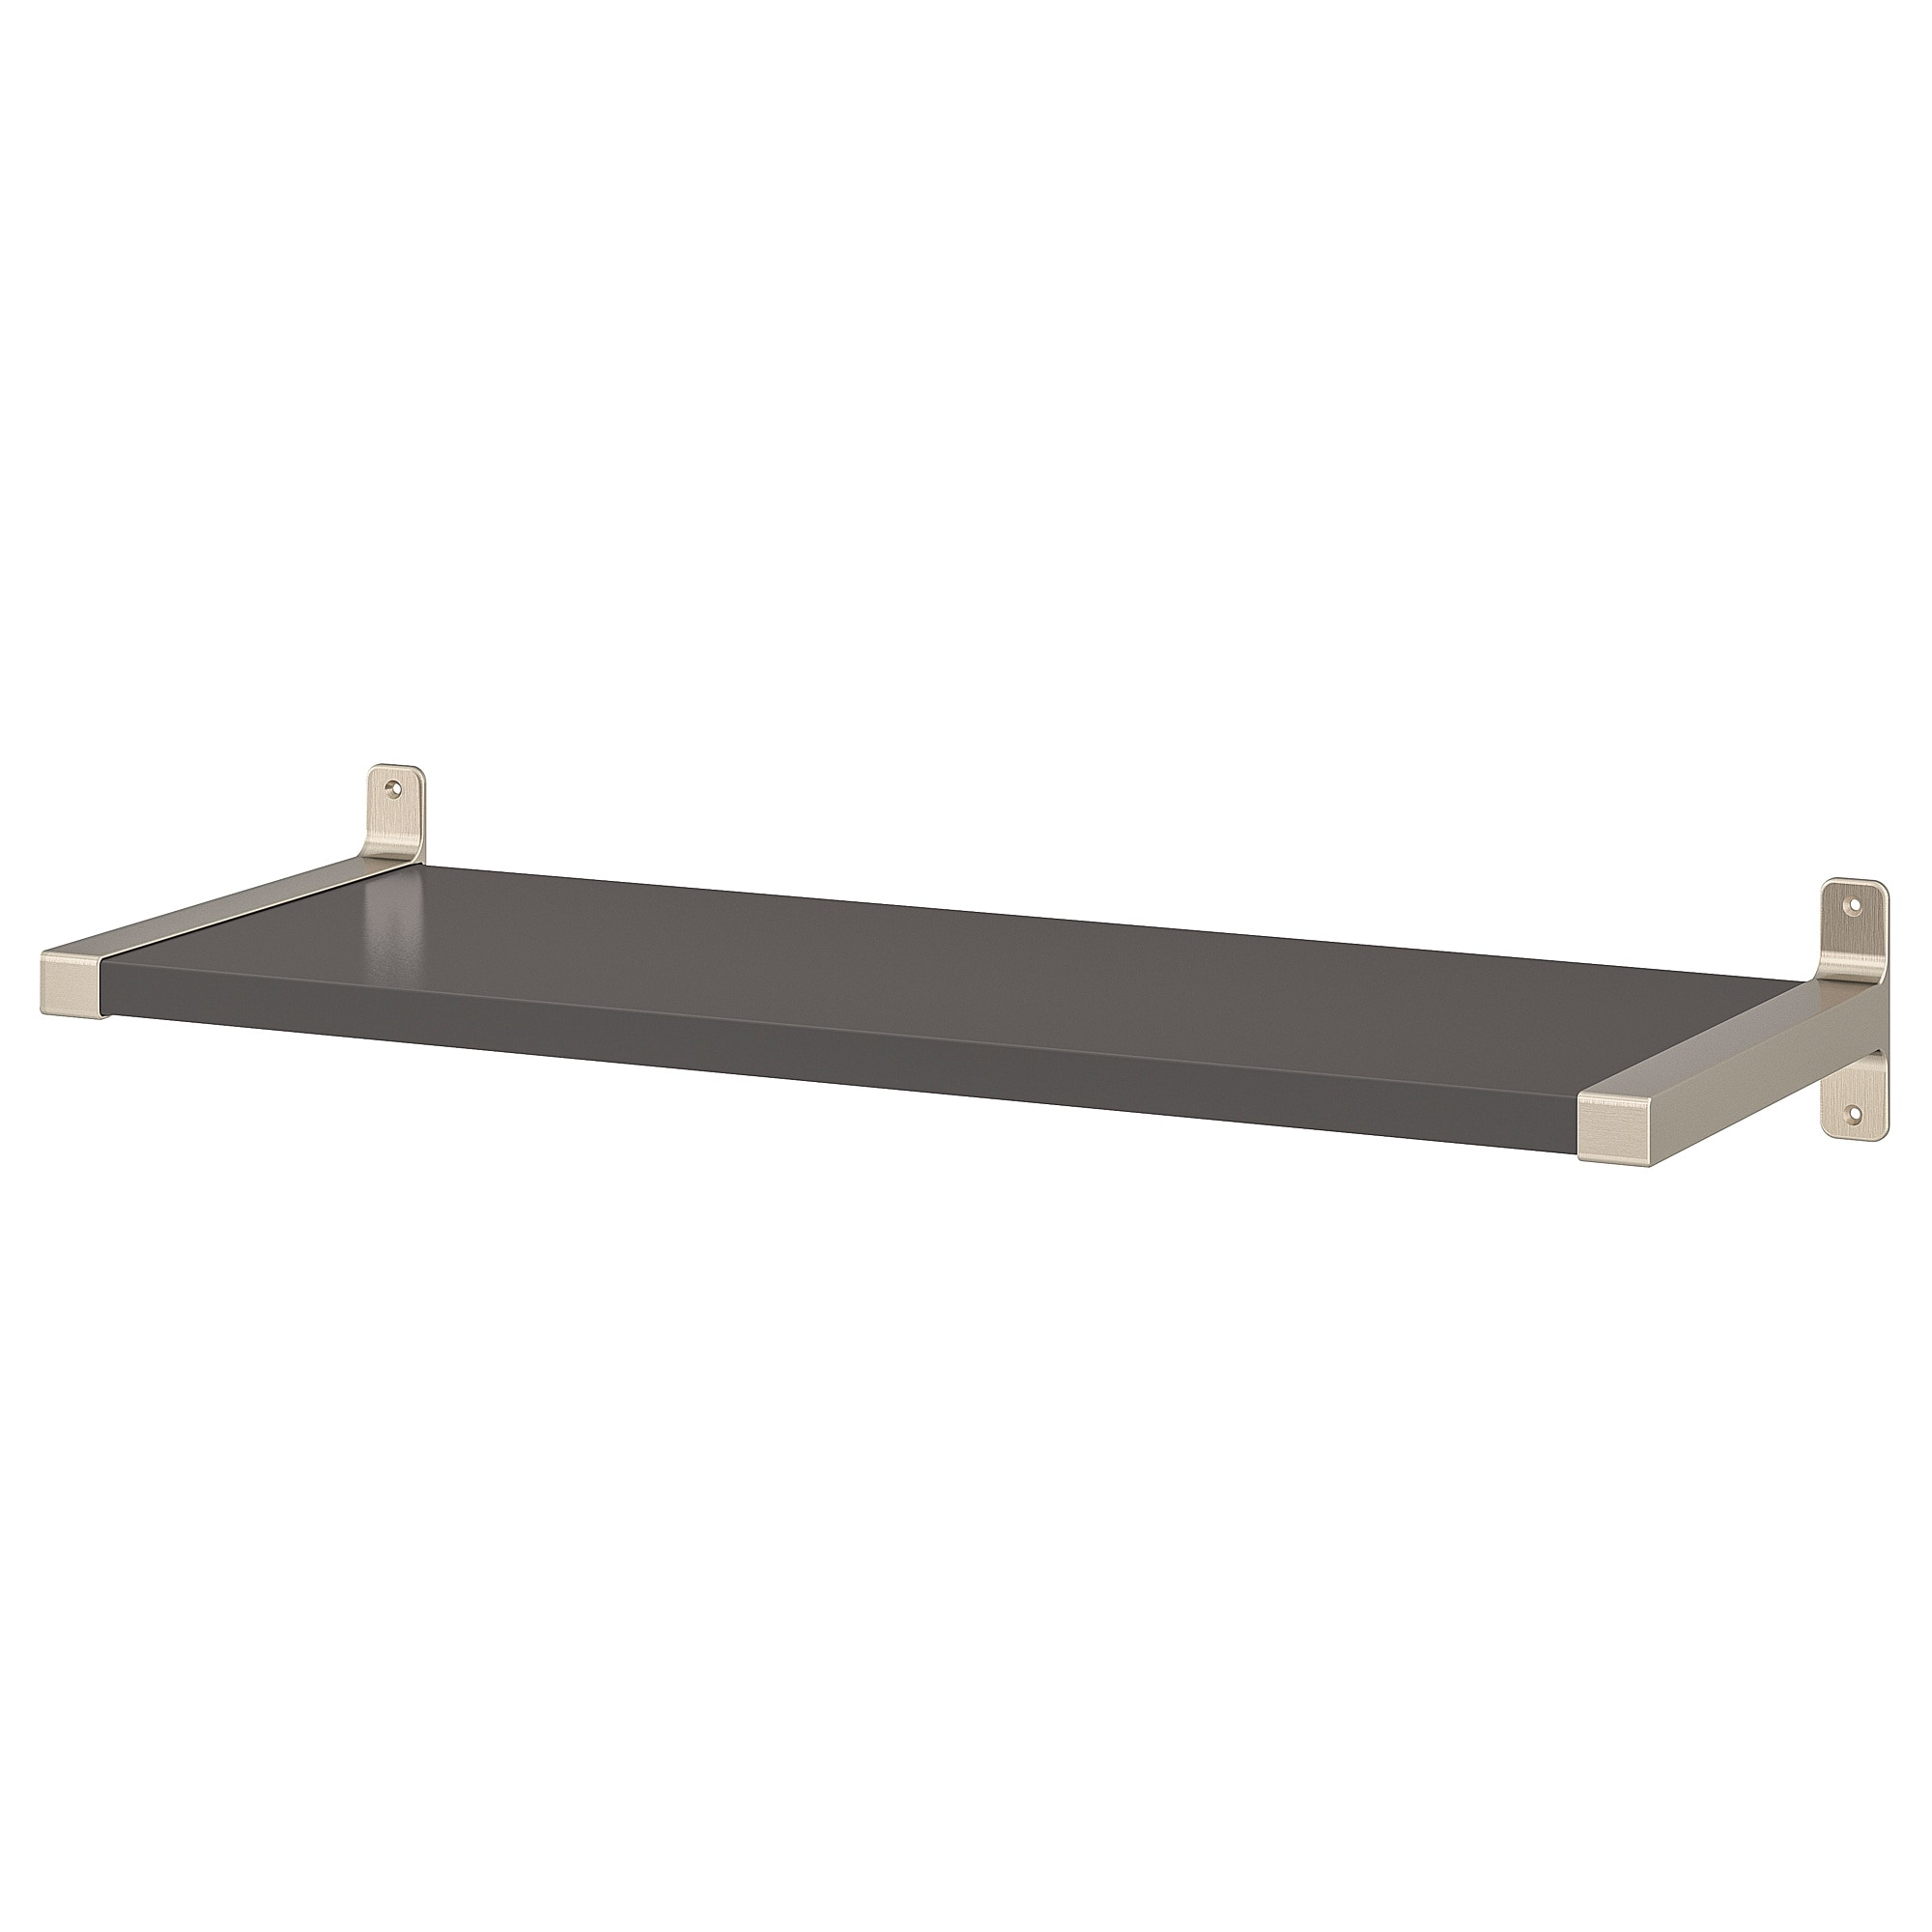 granhult bergshult wall shelf dark grey nickel plated ikea floating shelves retro kitchen custom closets for less nice braces white decor black gap between units radiator shelving